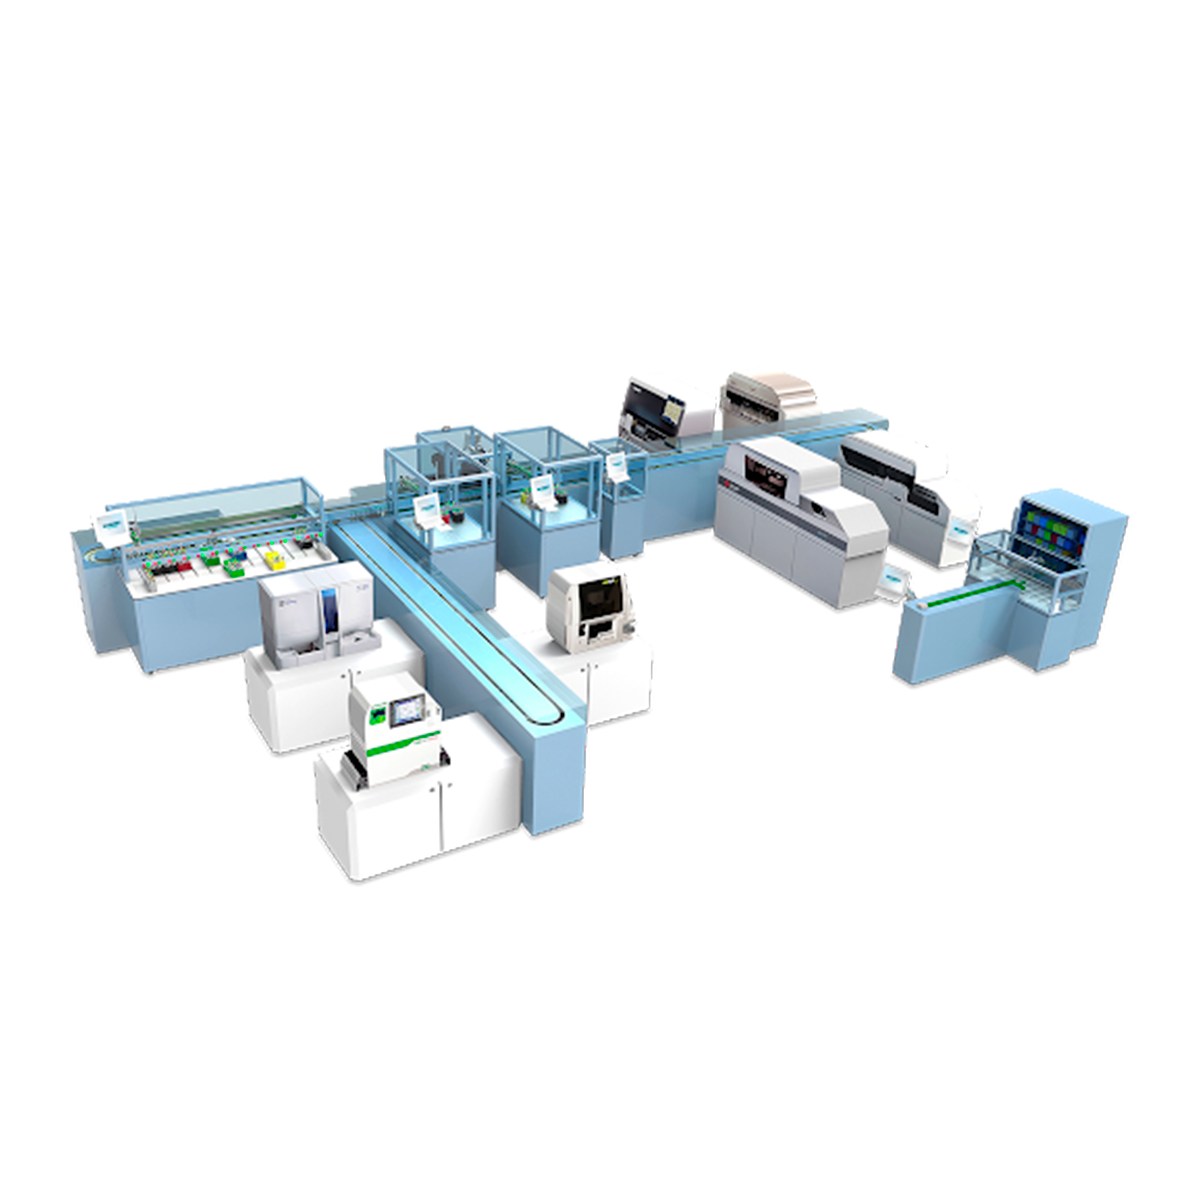 Laboratory automation systems